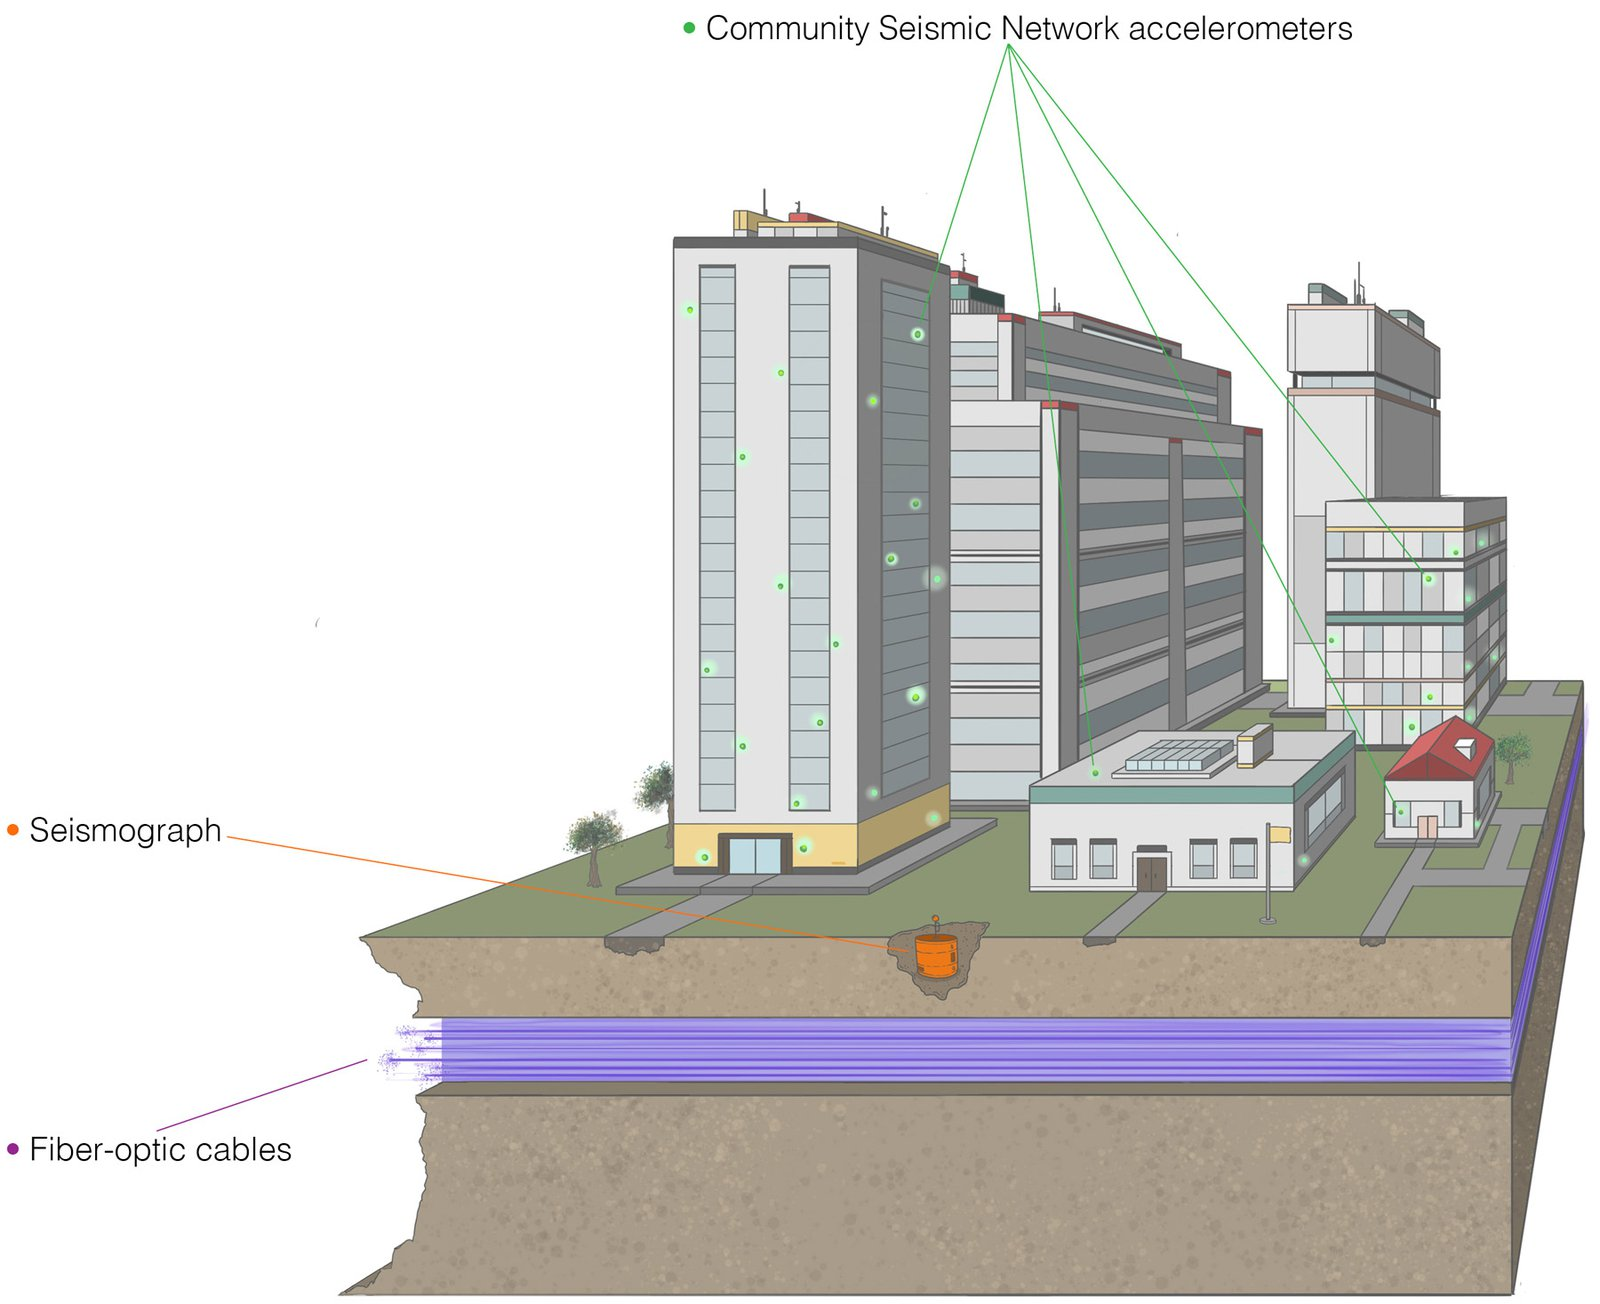 Cross section of a city scape and residential area showing the community seismic network, seismometer, and fiber-optic cables.